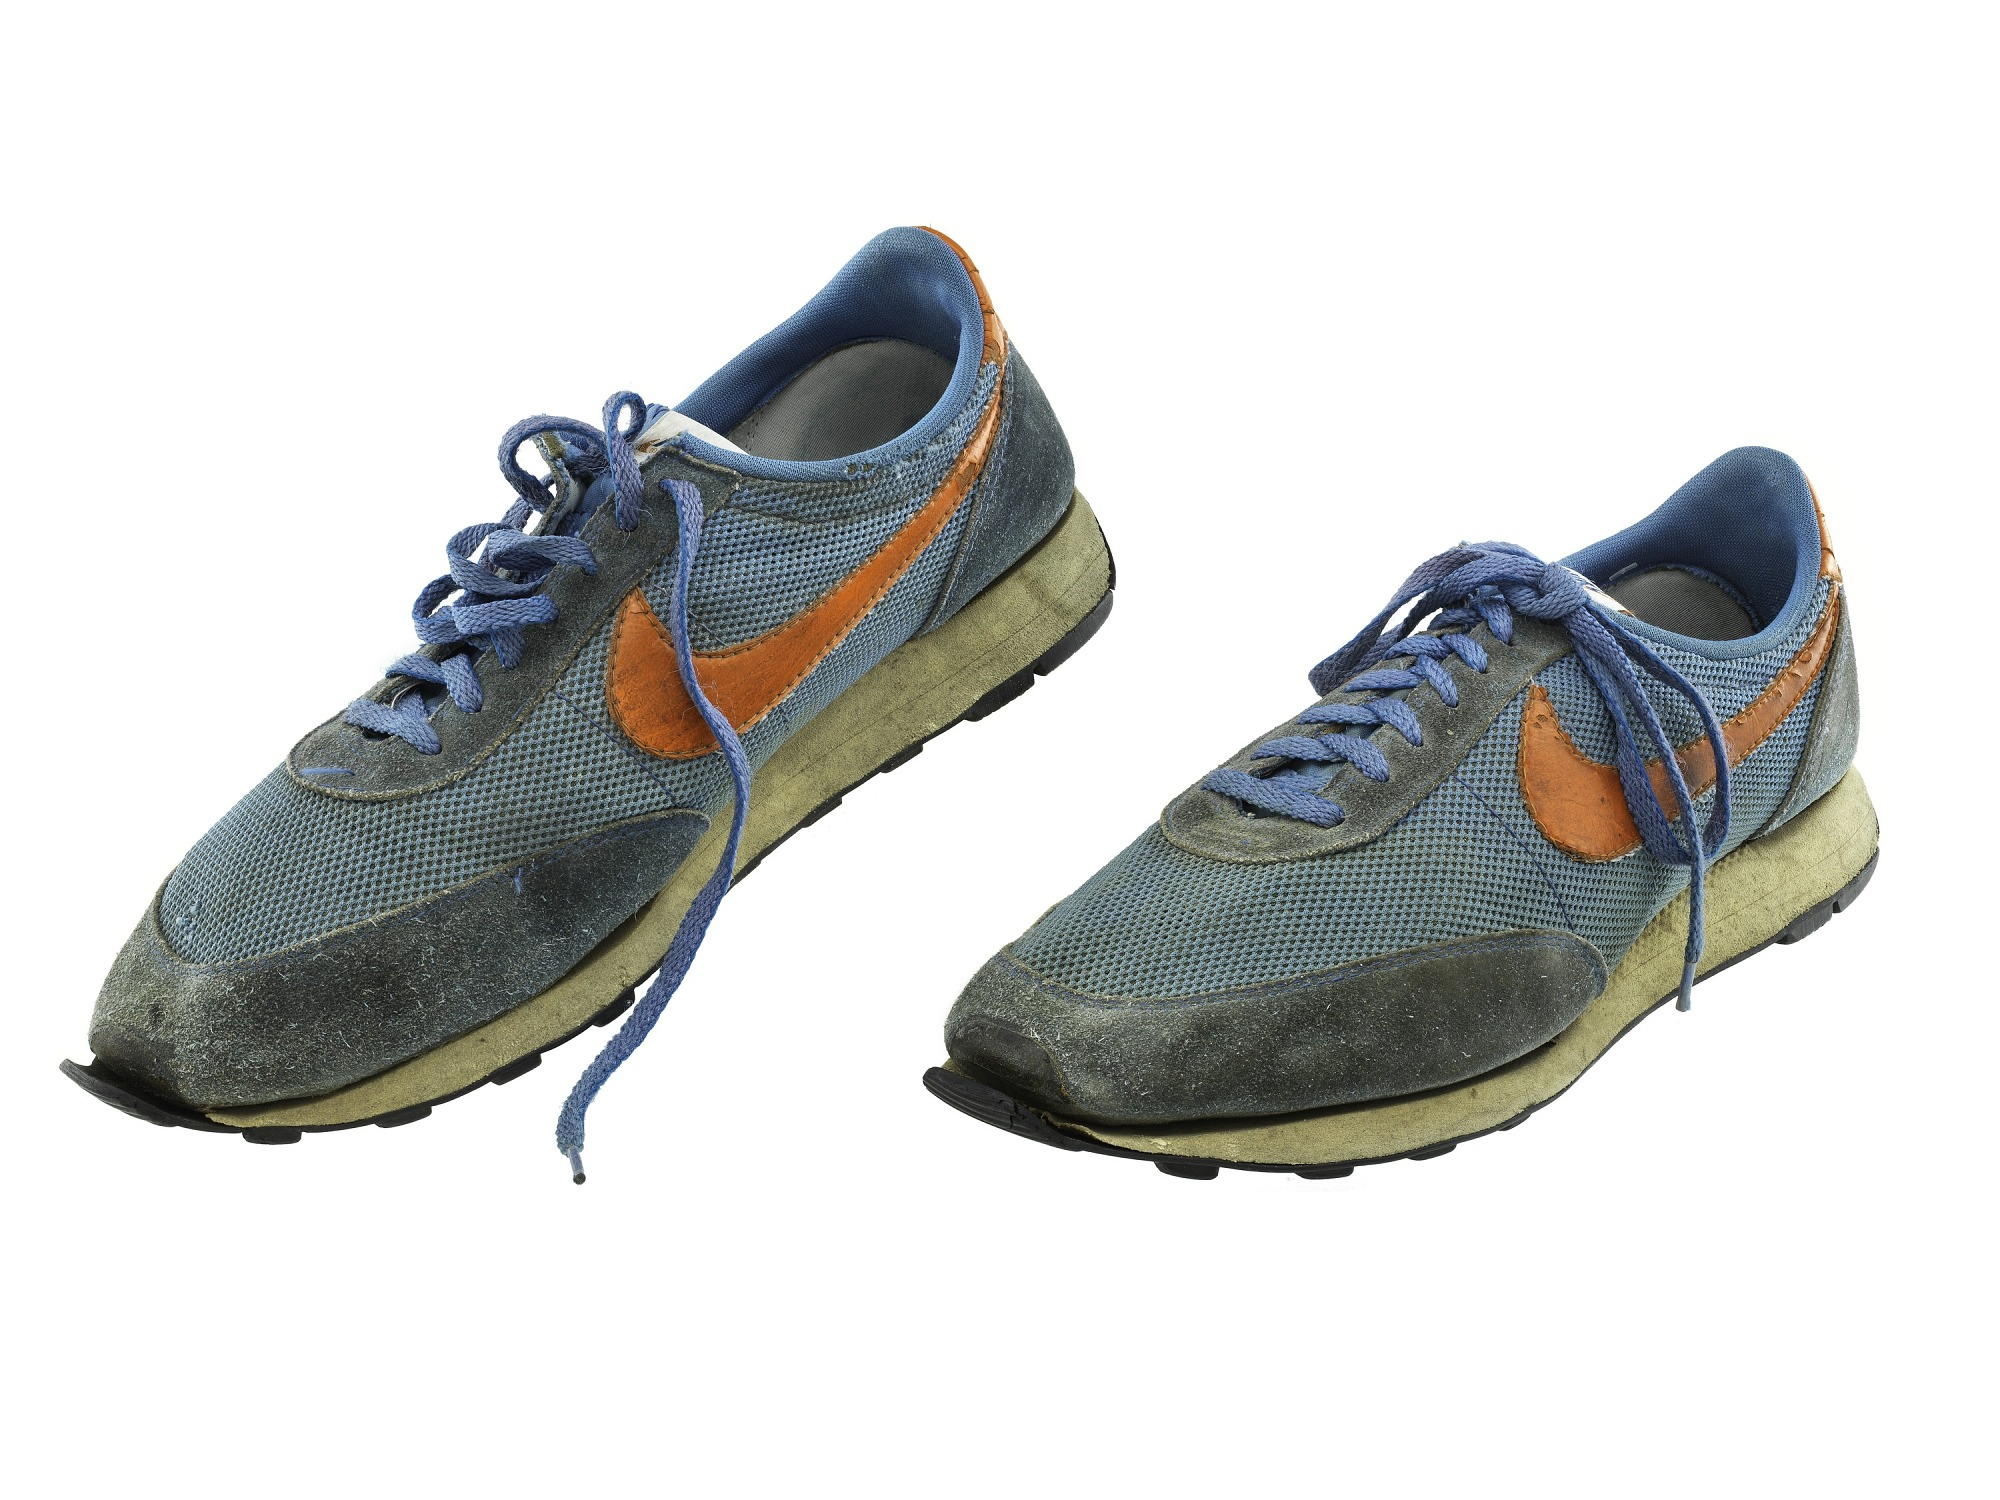 2a89faa1fa3a Nike Waffle Trainer | National Museum of American History